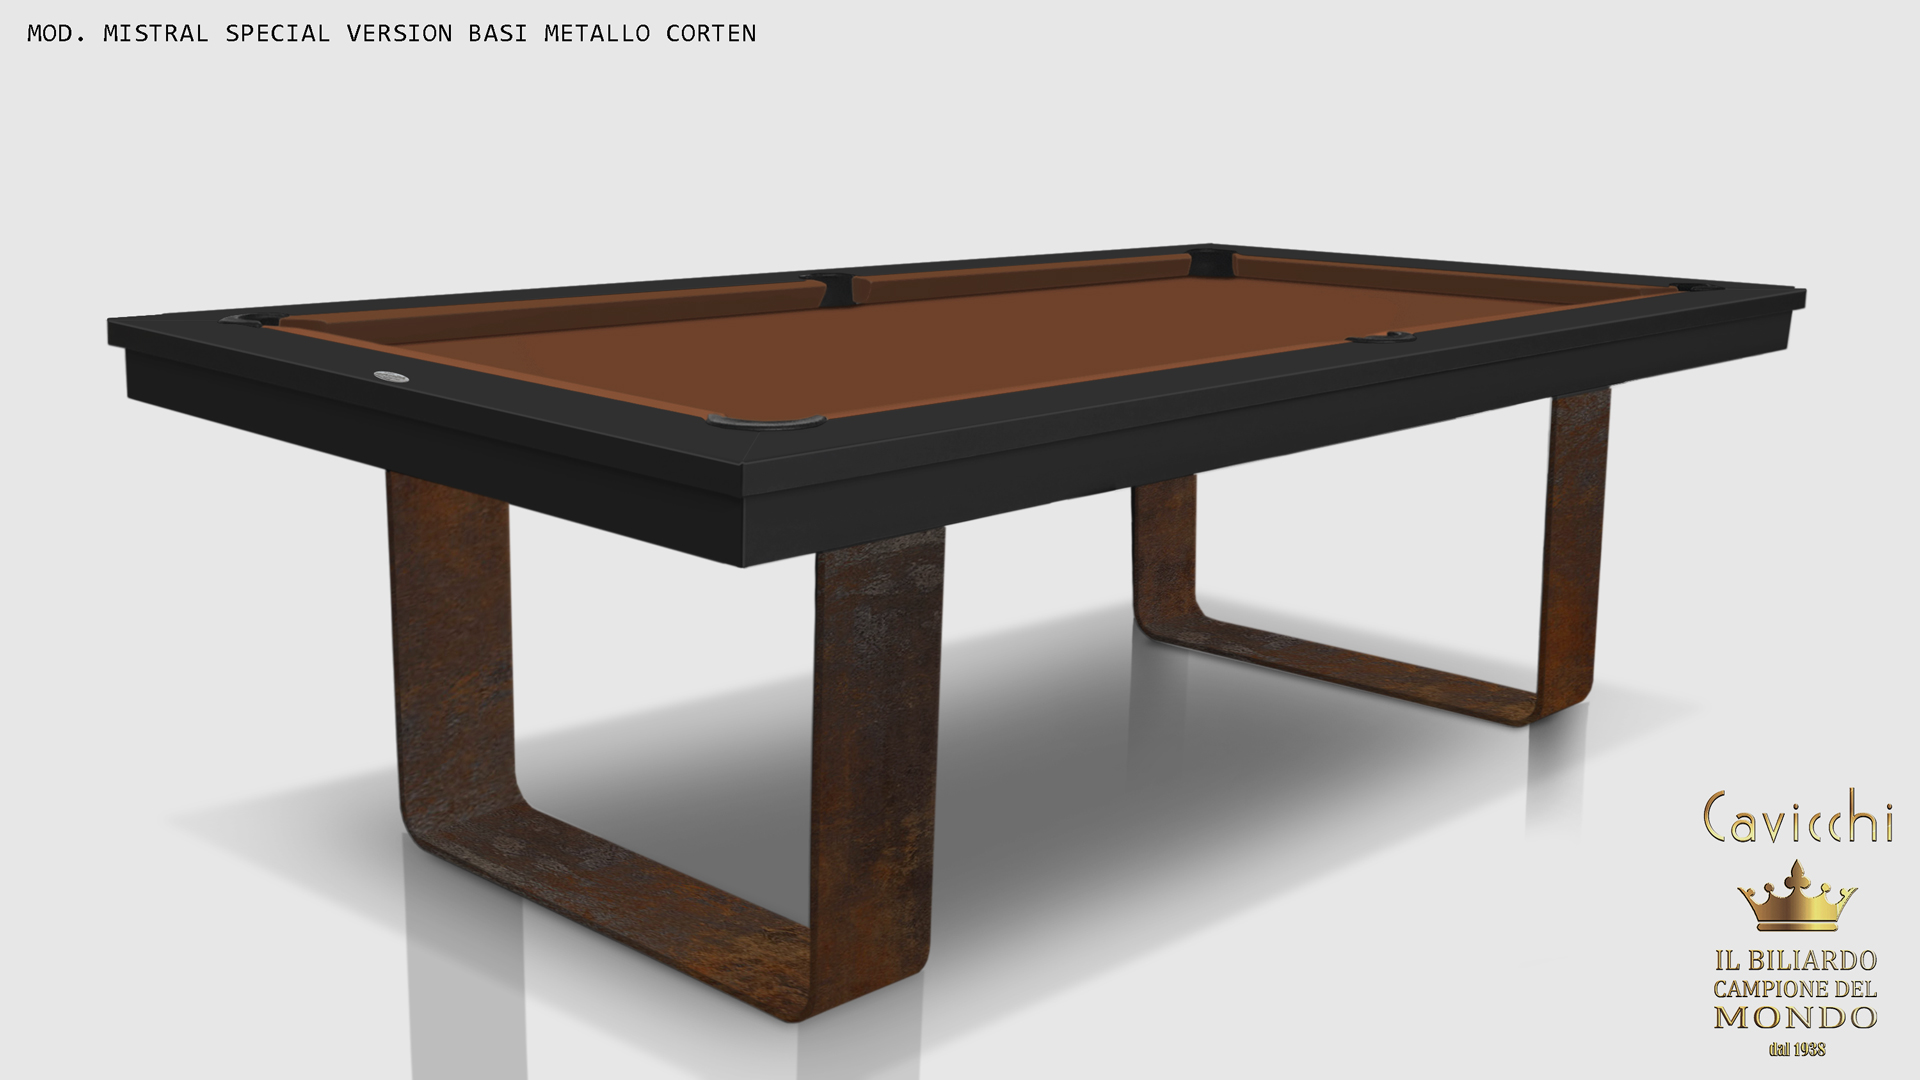 Cavicchi Mistral Deluxe pool table 7